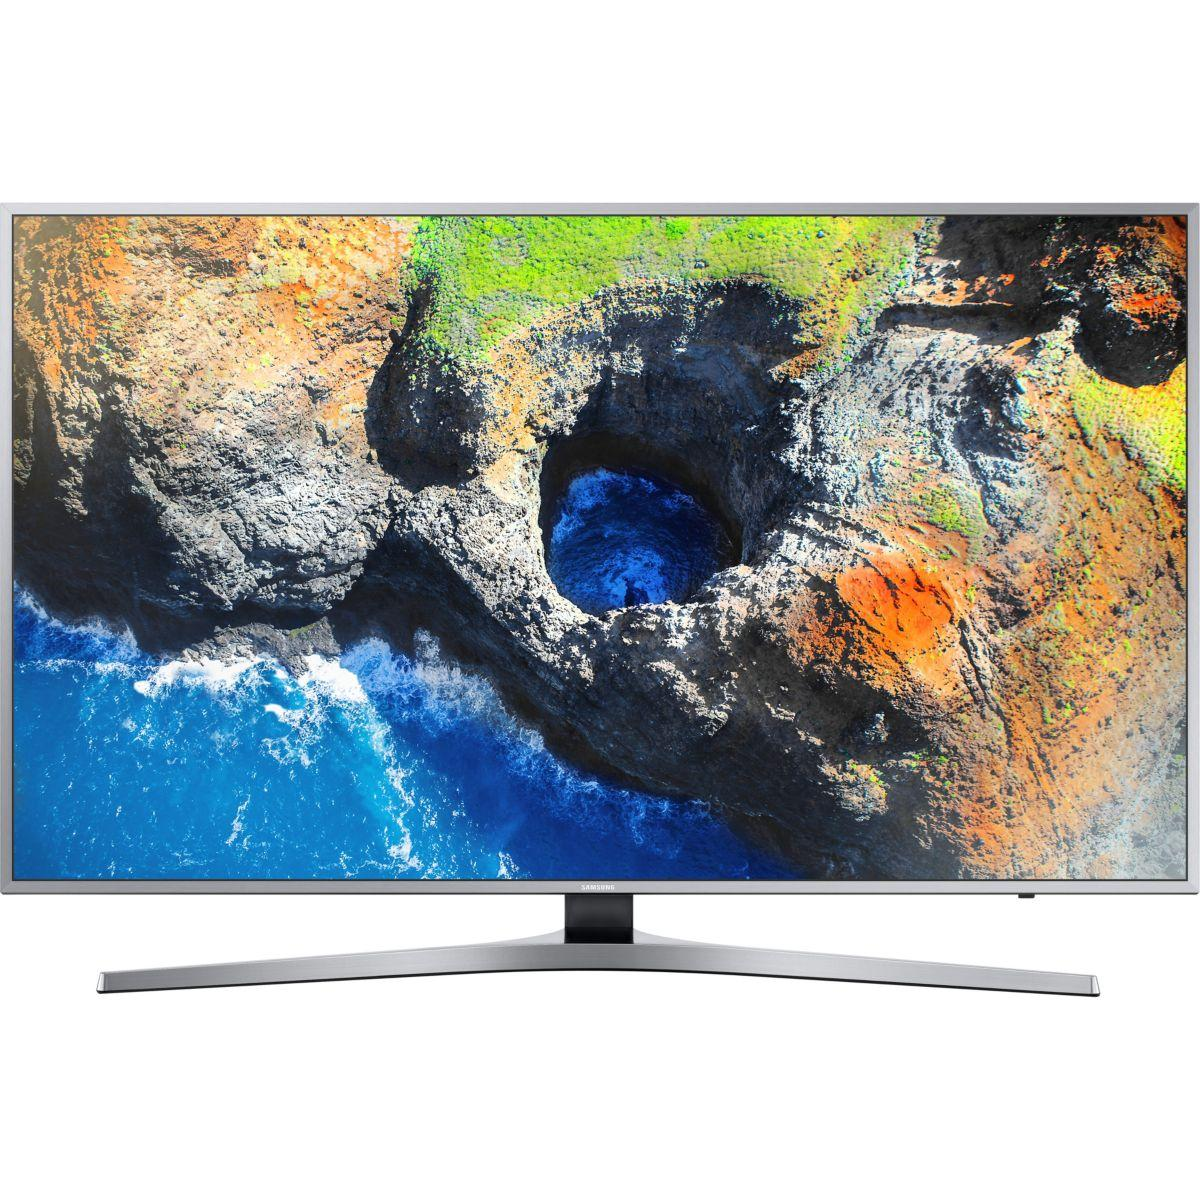 Tv samsung ue65mu6405 4k hdr smart cryst (photo)